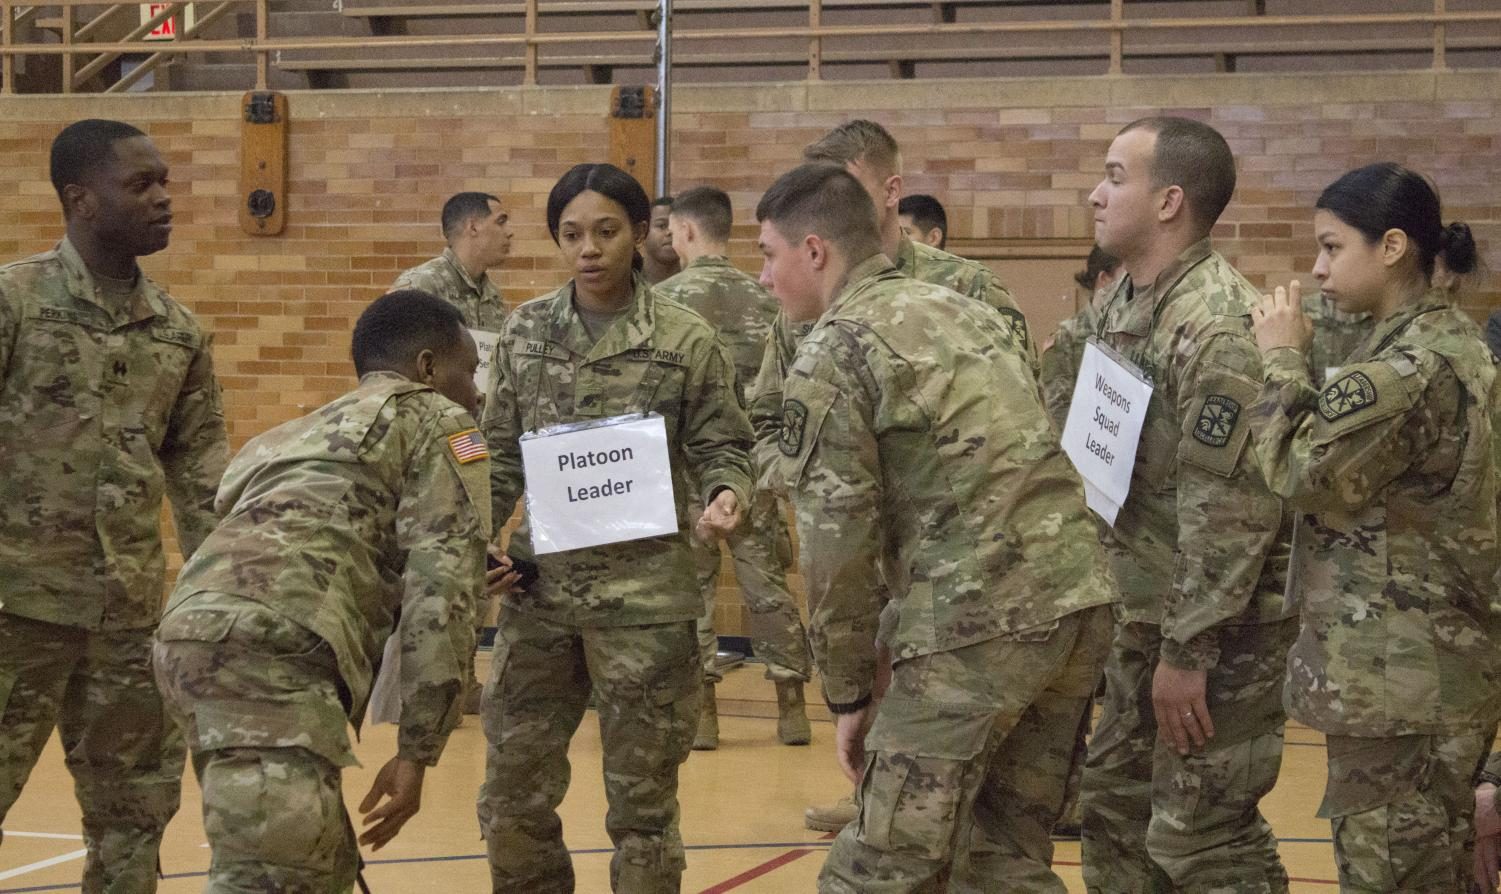 Eastern's Army ROTC takes place in McAfee Gym on Thursday evening. Students prepare and get ready to go over their operation plan for Military Science lab.